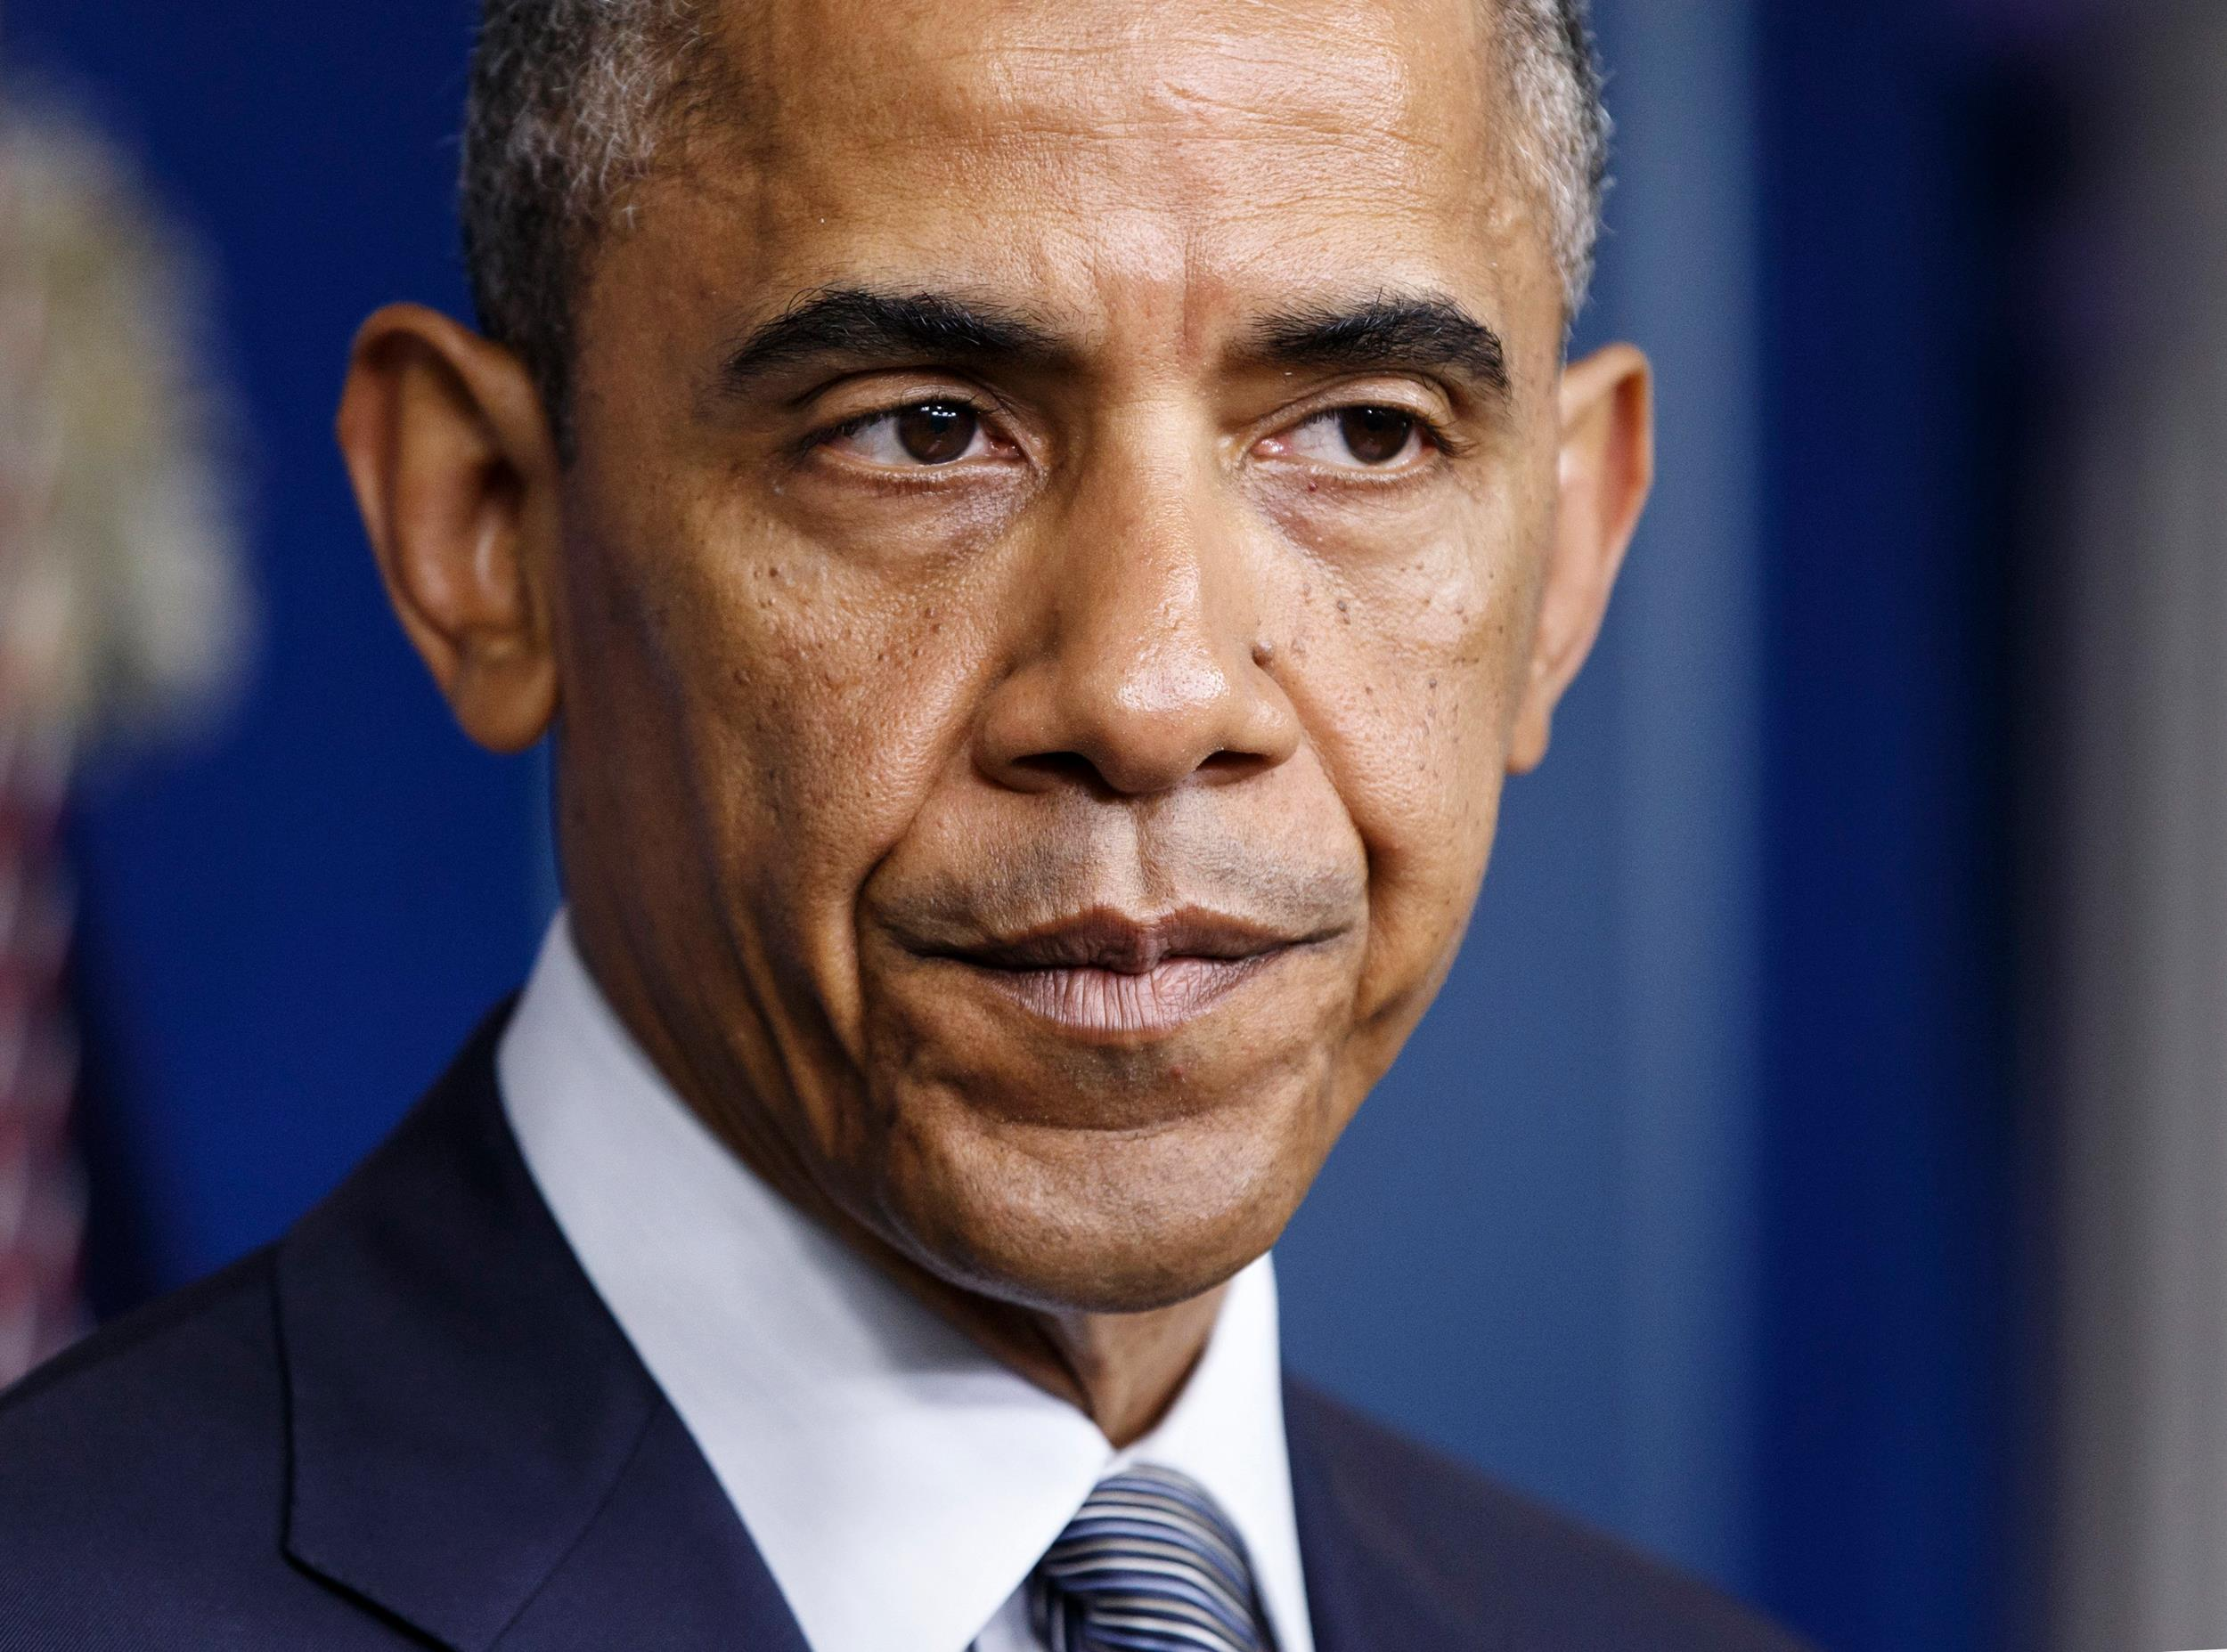 President Obama Makes Amazing Claim About Lionel Messi Obama people db